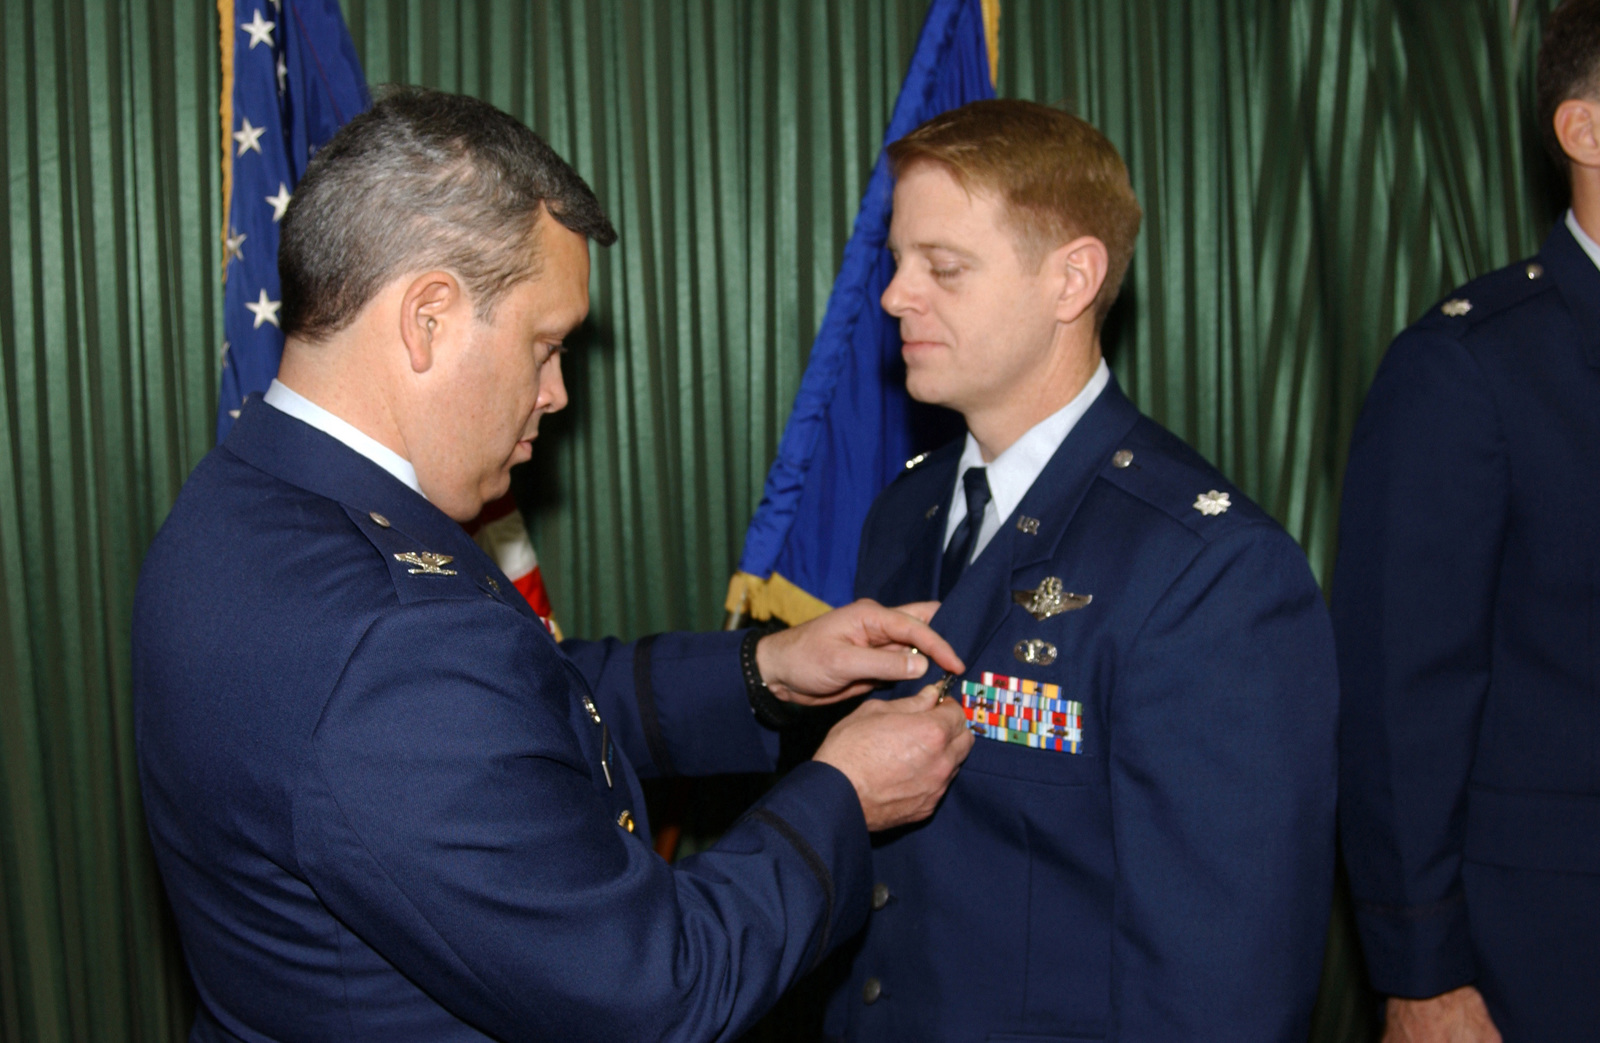 US Air Force (USAF) Colonel (COL) Michael A Longoria (left), Commander, 18th Air Support Operations Group (ASOG), Pope Air Force Base (AFB), North Carolina (NC), pins the Bronze Star on USAF Lieutenant Colonel (LCOL) Donald D Tharp, 17th Air Support Operations Squadron (ASOS), Hunter Army Airfield (AAF), Georgia (GA). They awards ceremony was held at the Hunter Club on the base